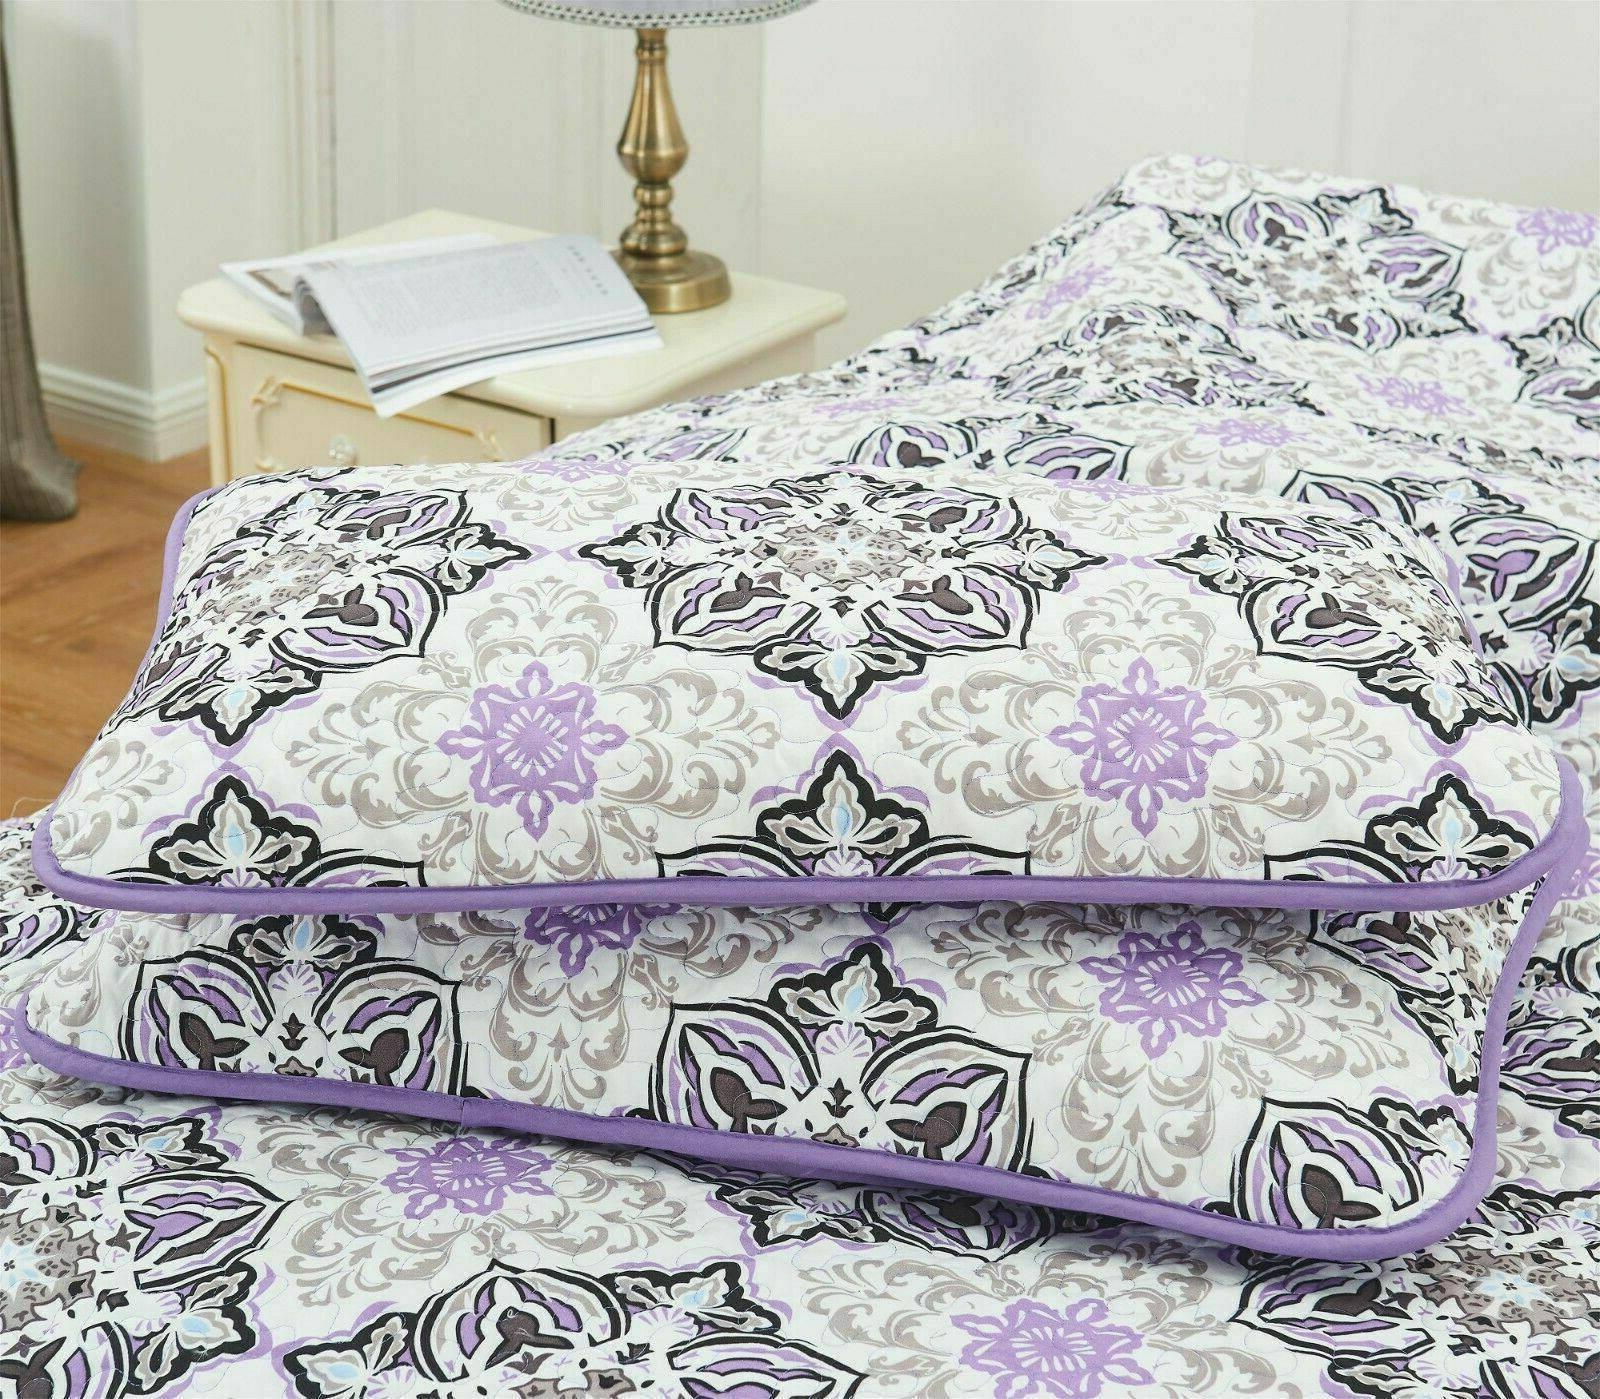 Quilt Sets 4 Piece Down with and Decorative Pillow